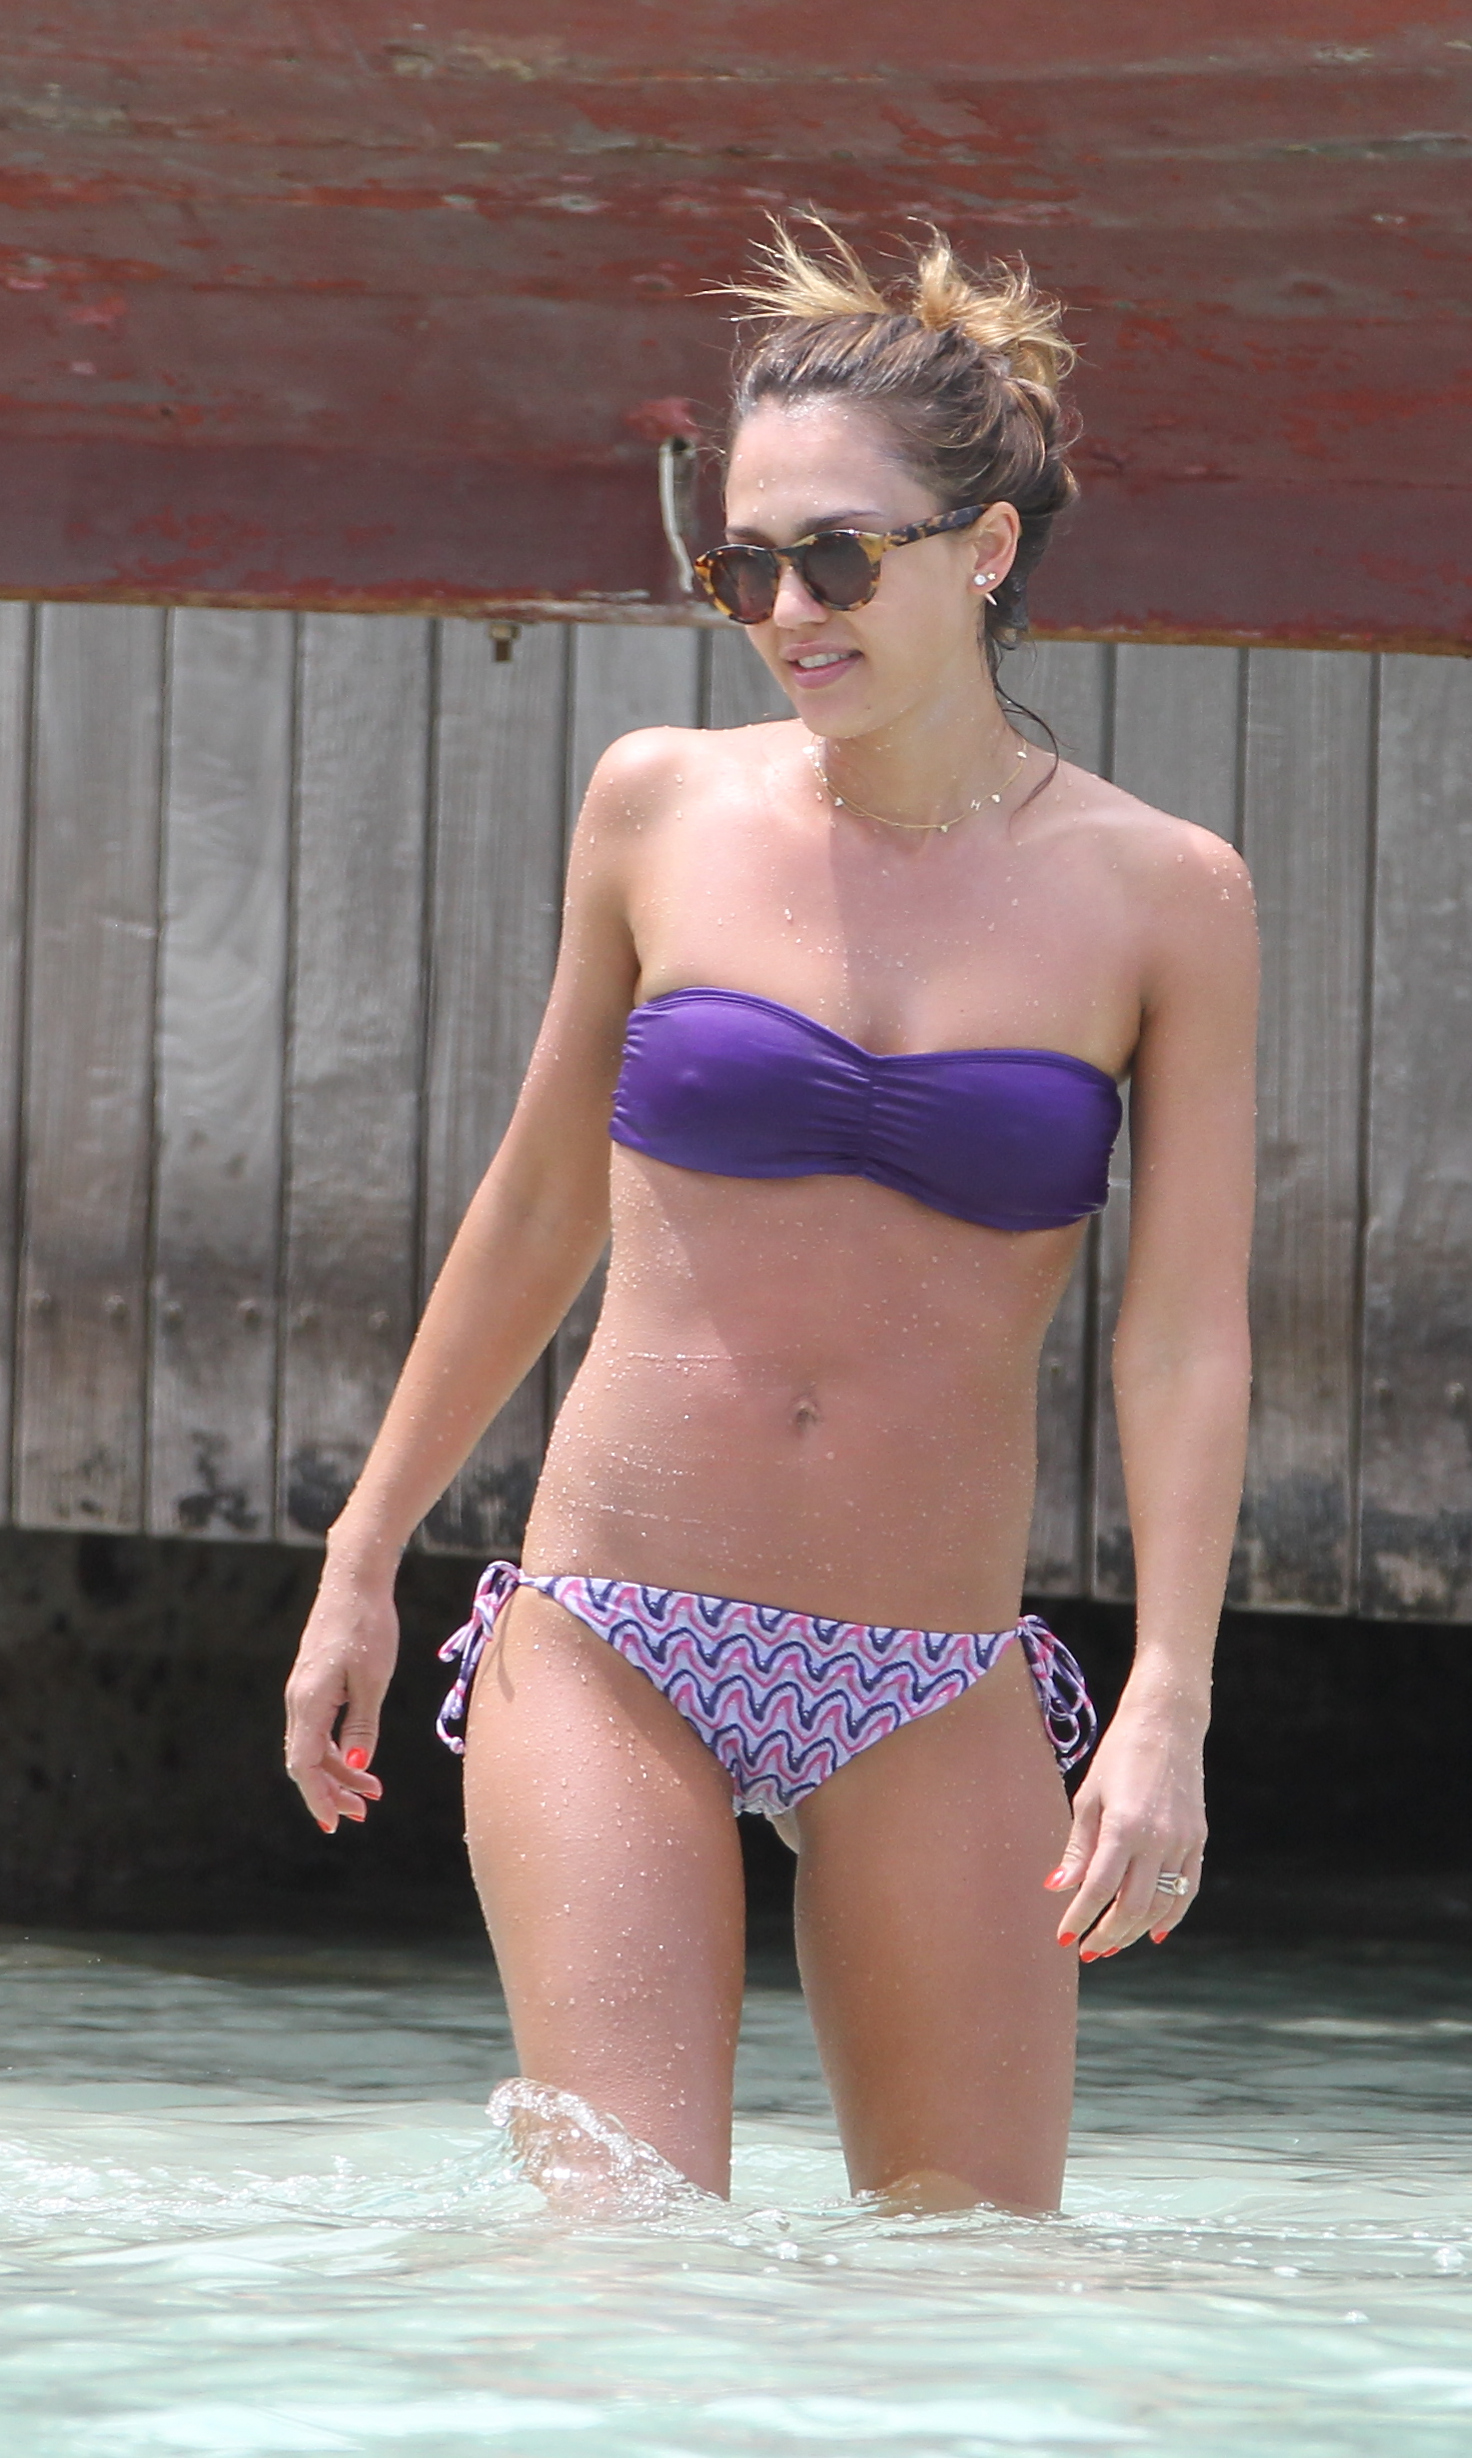 Jessica Alba looking stunning in a bikini on her Caribbean vacation.